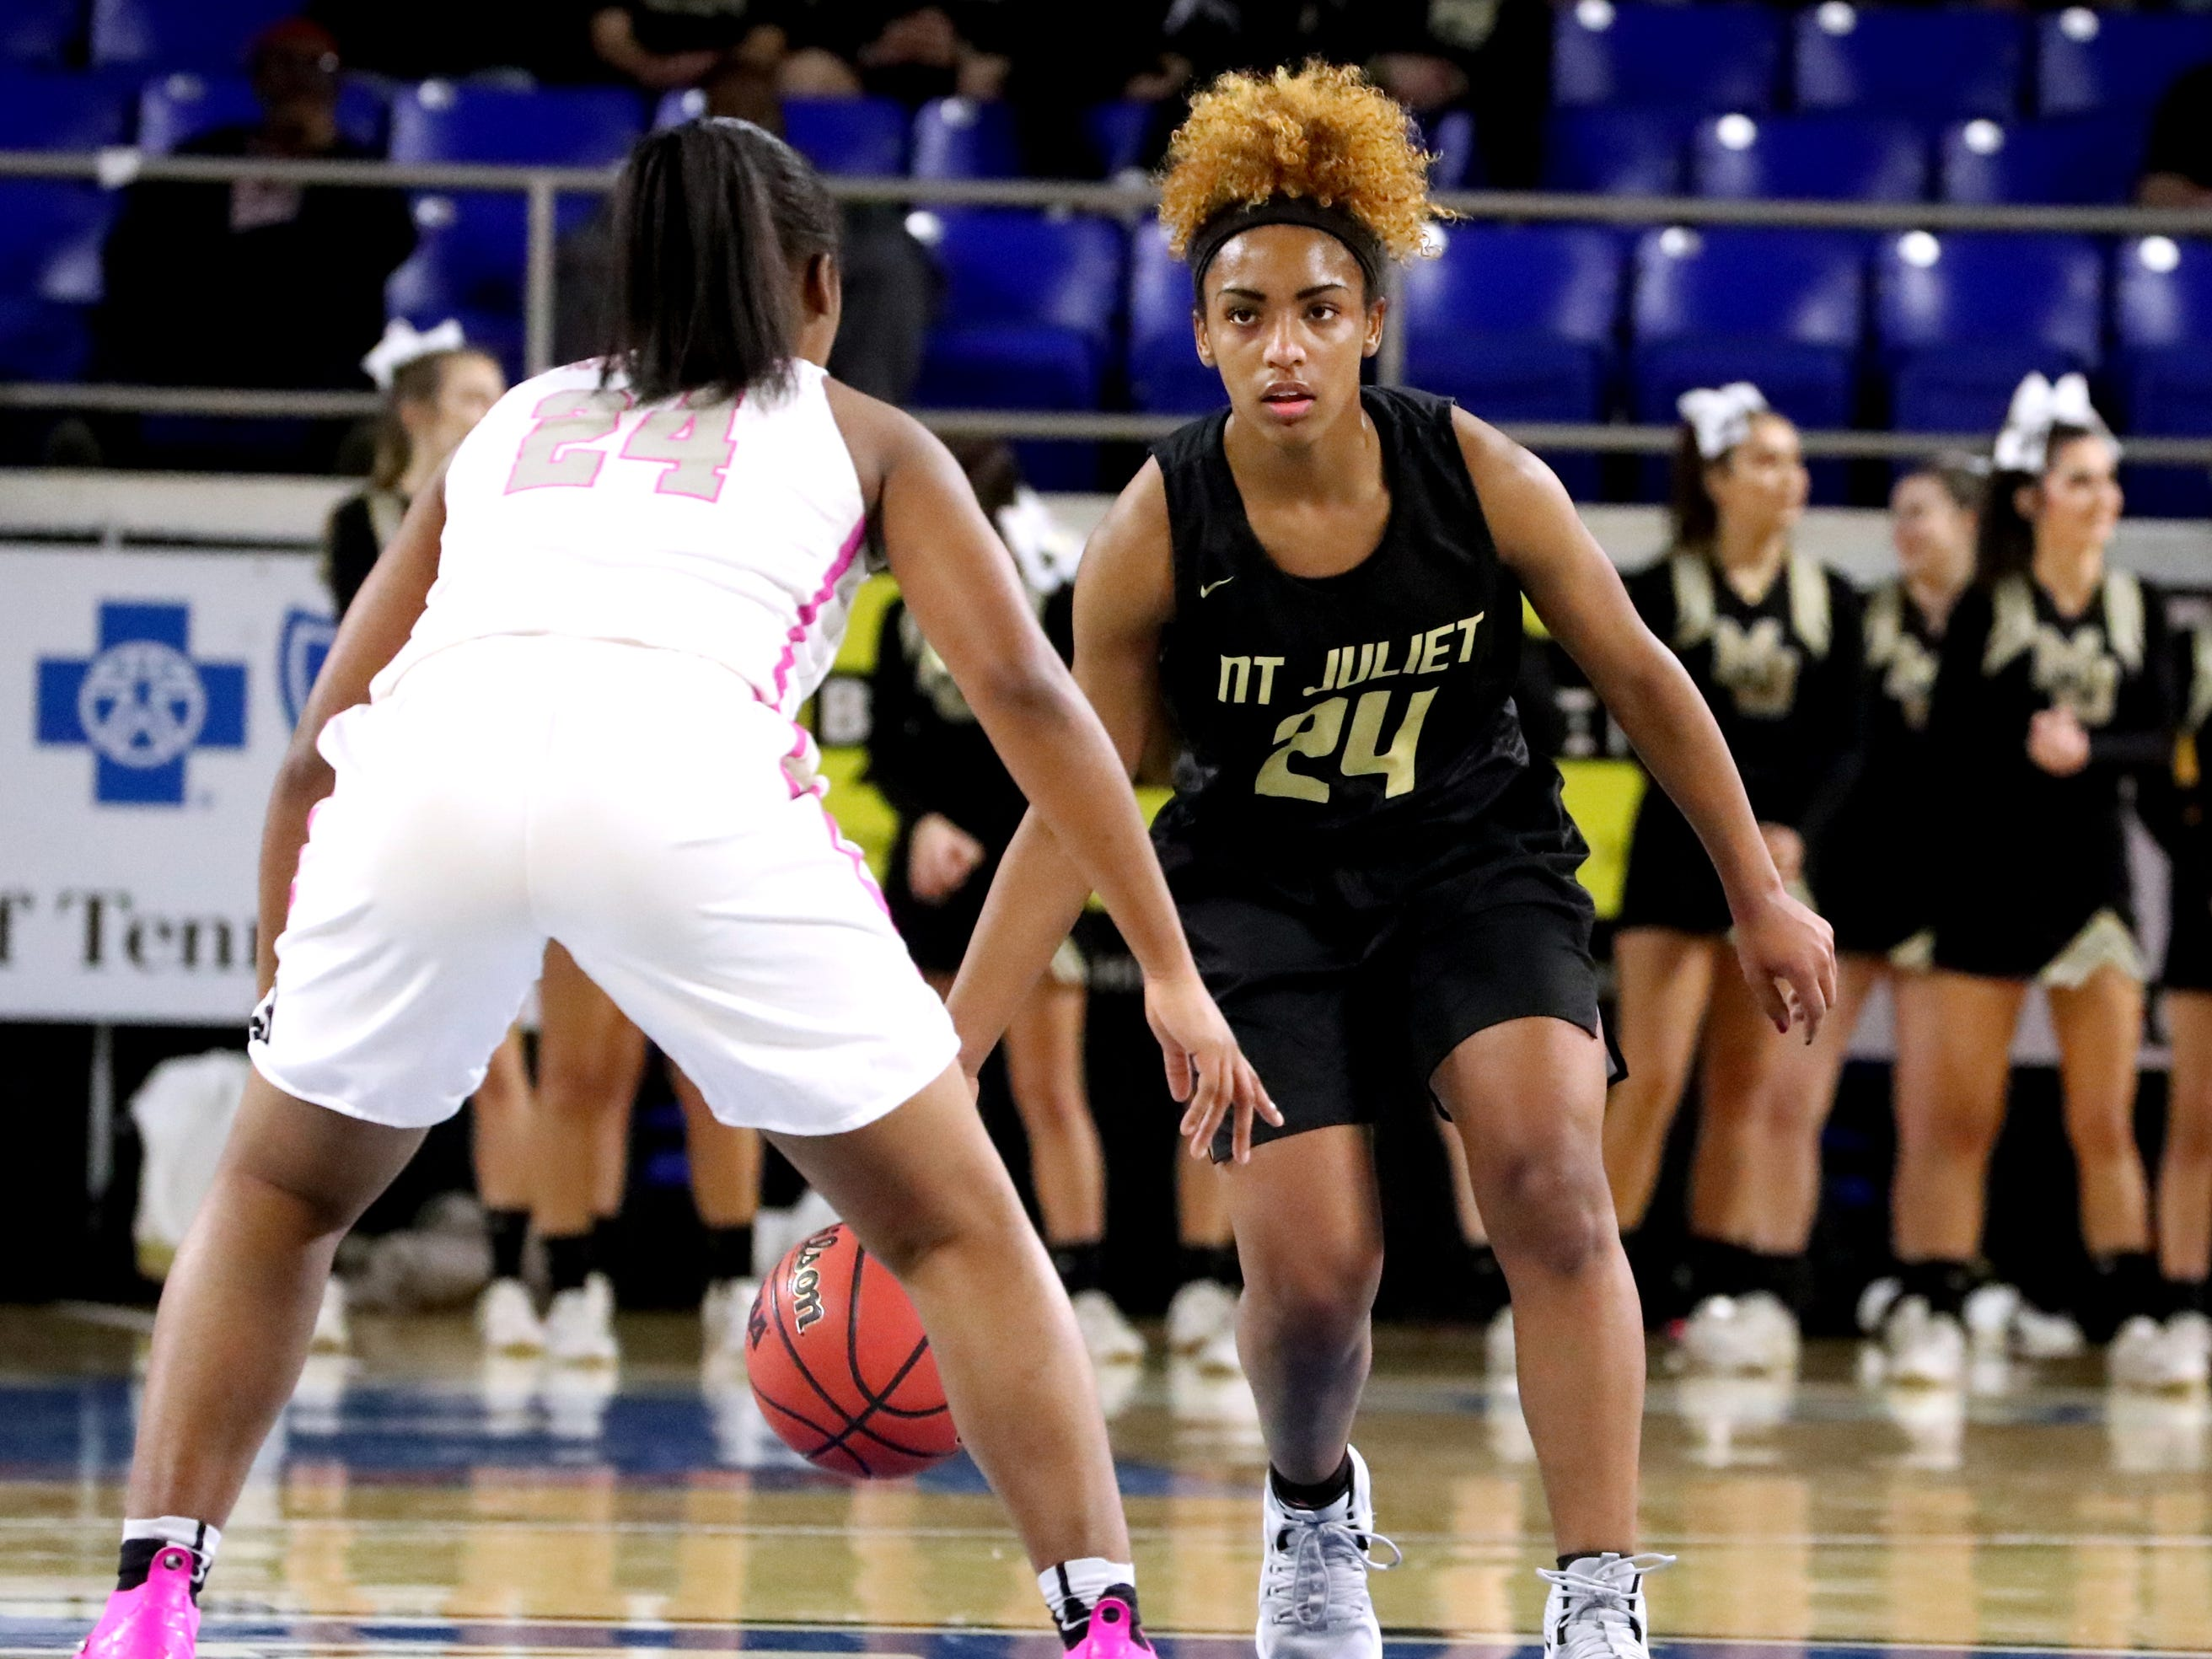 Mt. Juliet's Nevaeh Majors (24) brings the ball up court as Houston's Destinee Wells (24) guards her during the quarterfinal round of the TSSAA Div. 1 Class AAA Girls State Tournament, on Wednesday, March 6, 2019, at Murphy Center in Murfreesboro, Tenn.